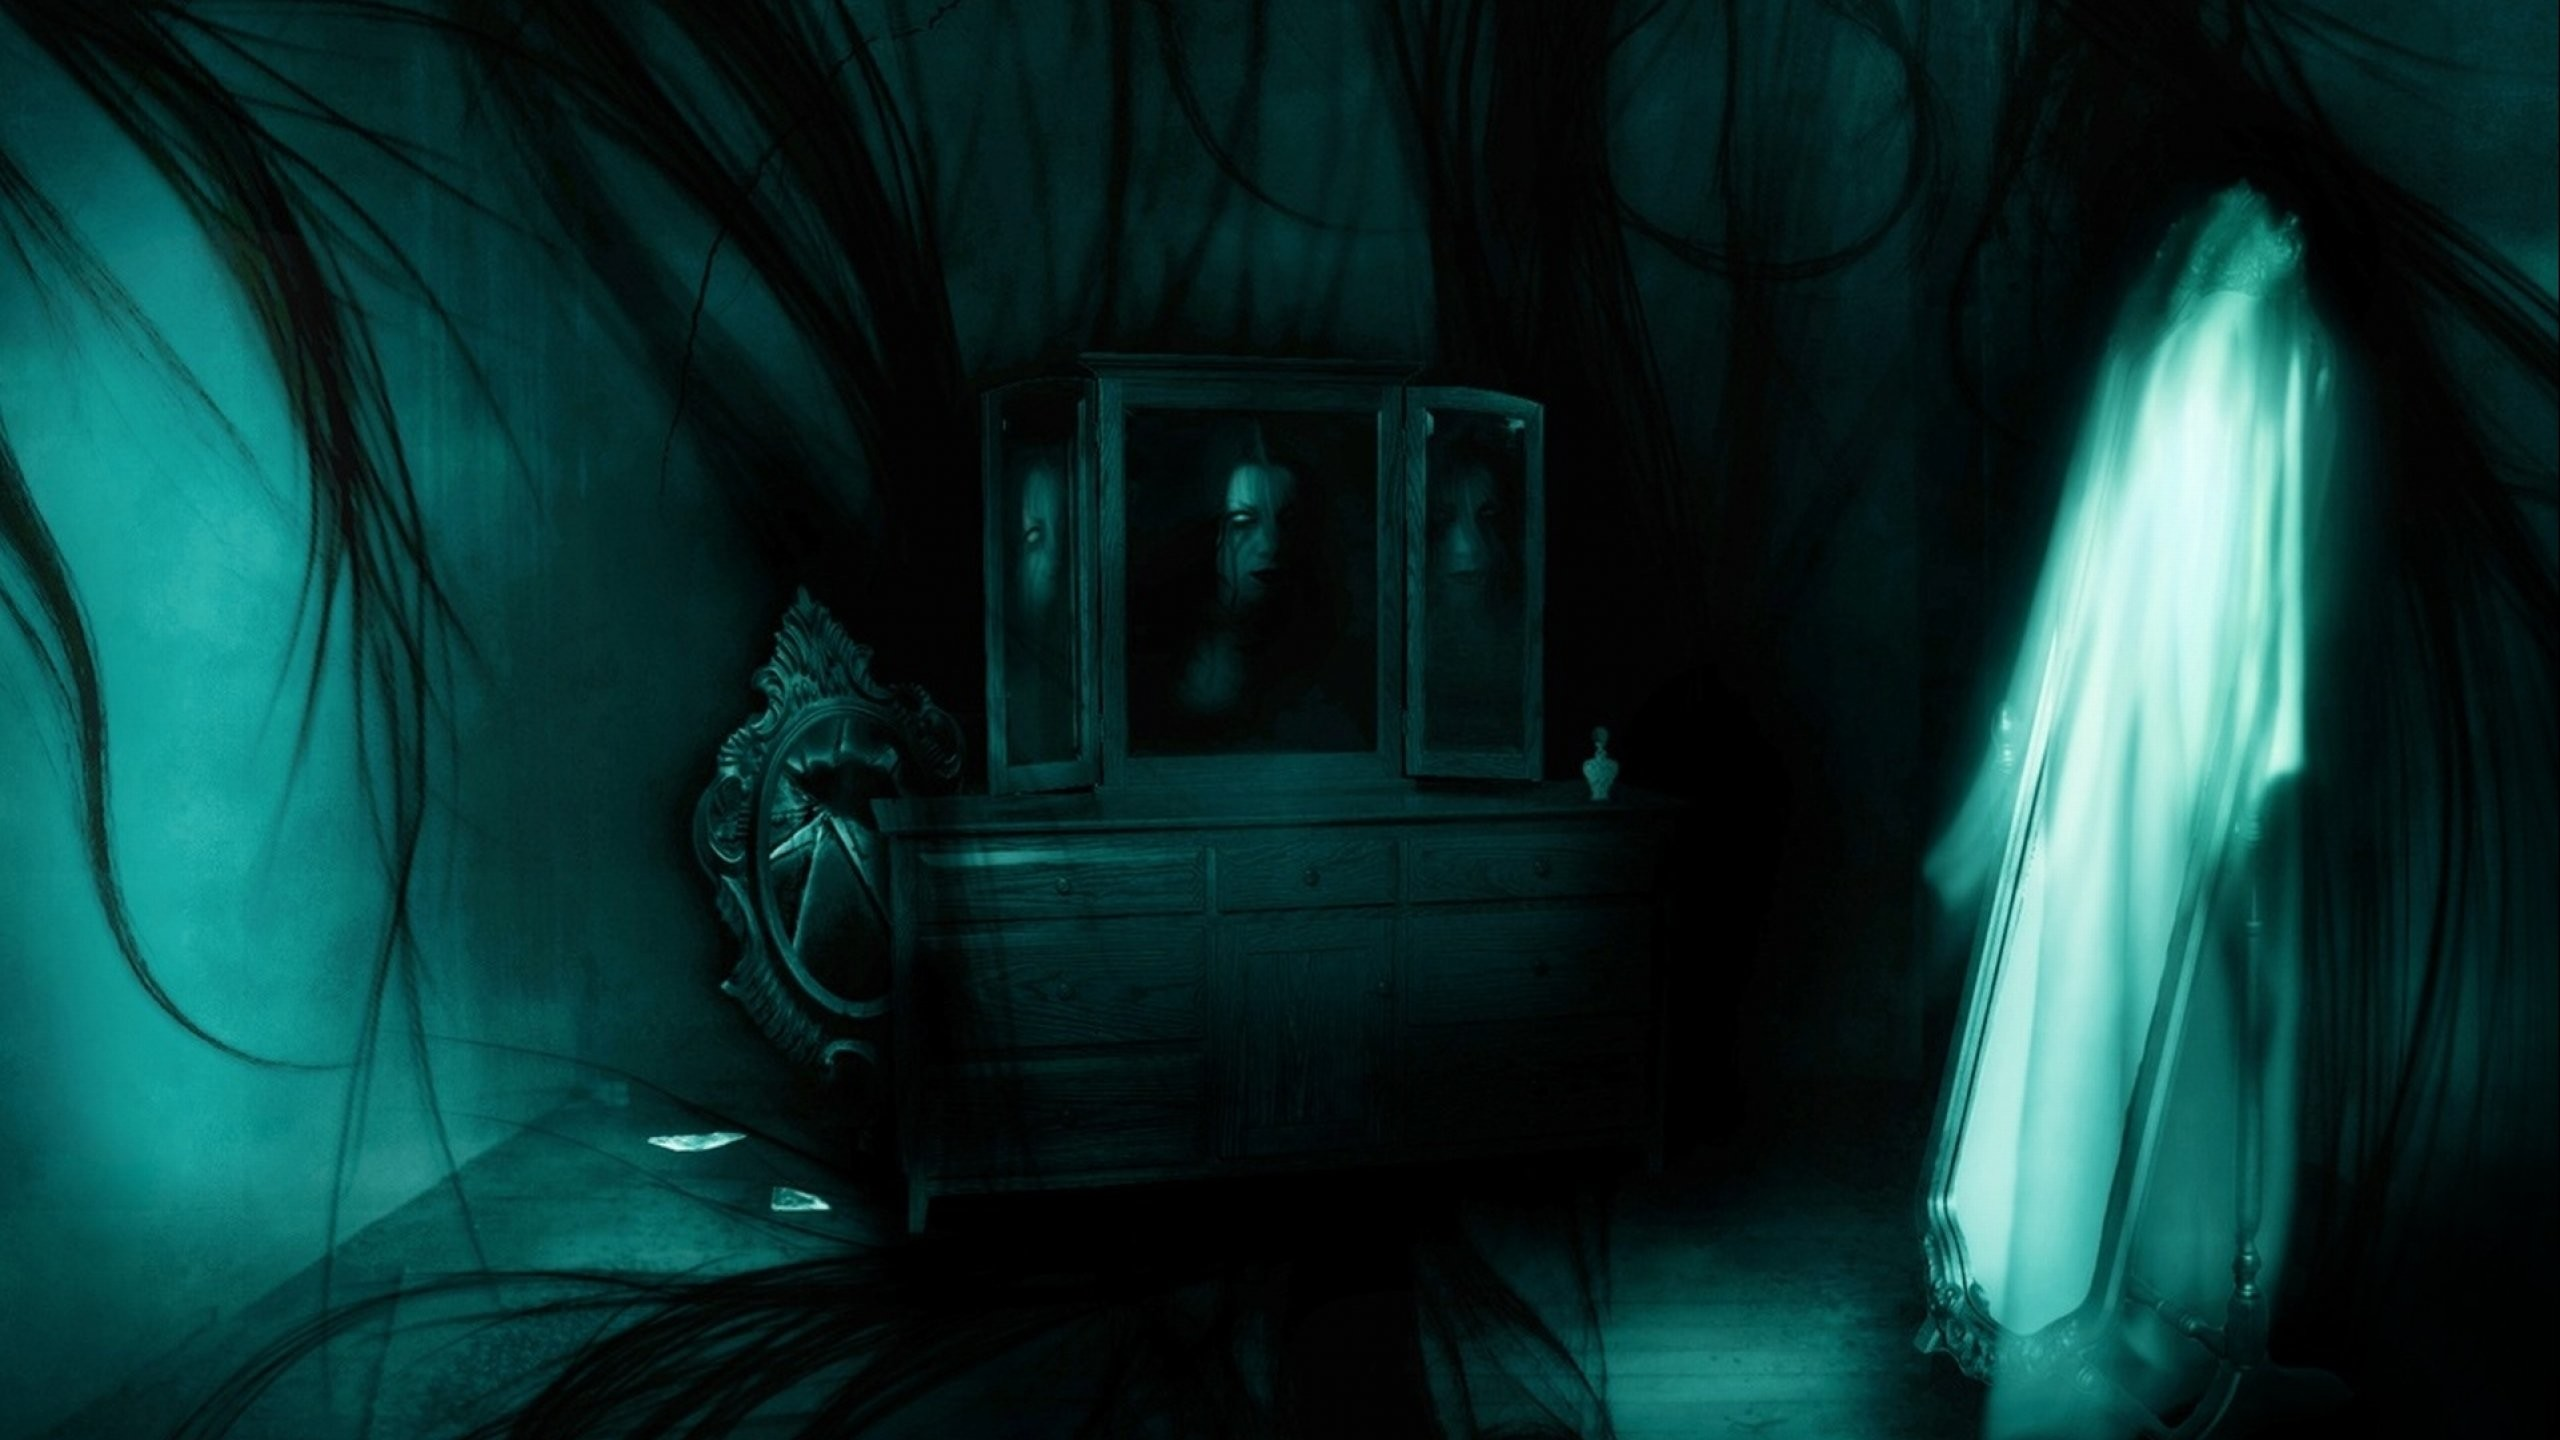 2560x1440 dark-ghost-fantasy-art-artwork-horror-spooky-creepy-halloween-gothic- wallpaper-1.jpg (2560×1440) | cool stuff | Pinterest | Creepy ghost, ...